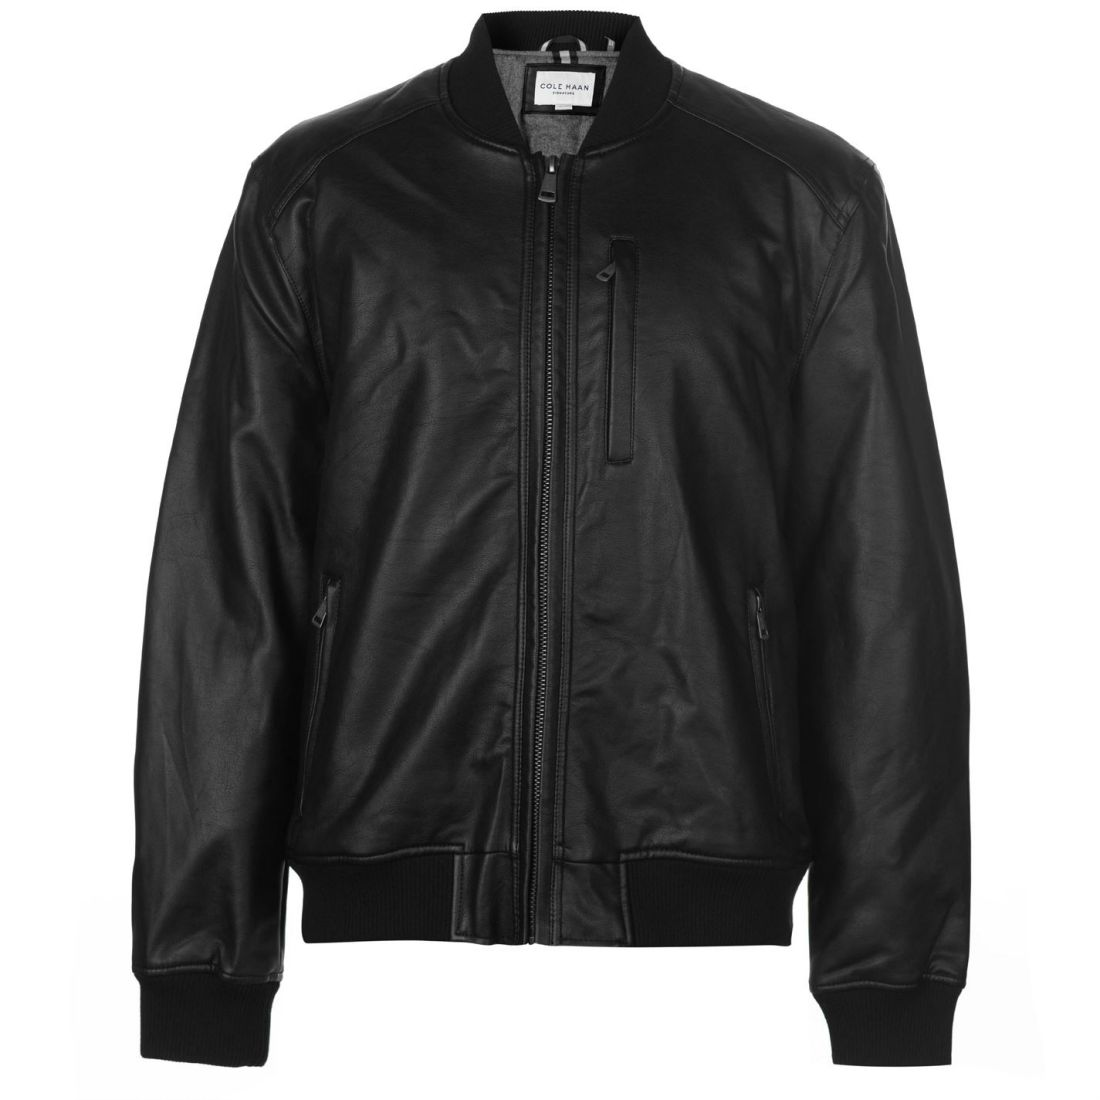 8b38b0c1c Details about Cole Haan Mens Bomber Jacket Leather PU Coat Top Lightweight  Zip Full Insulated